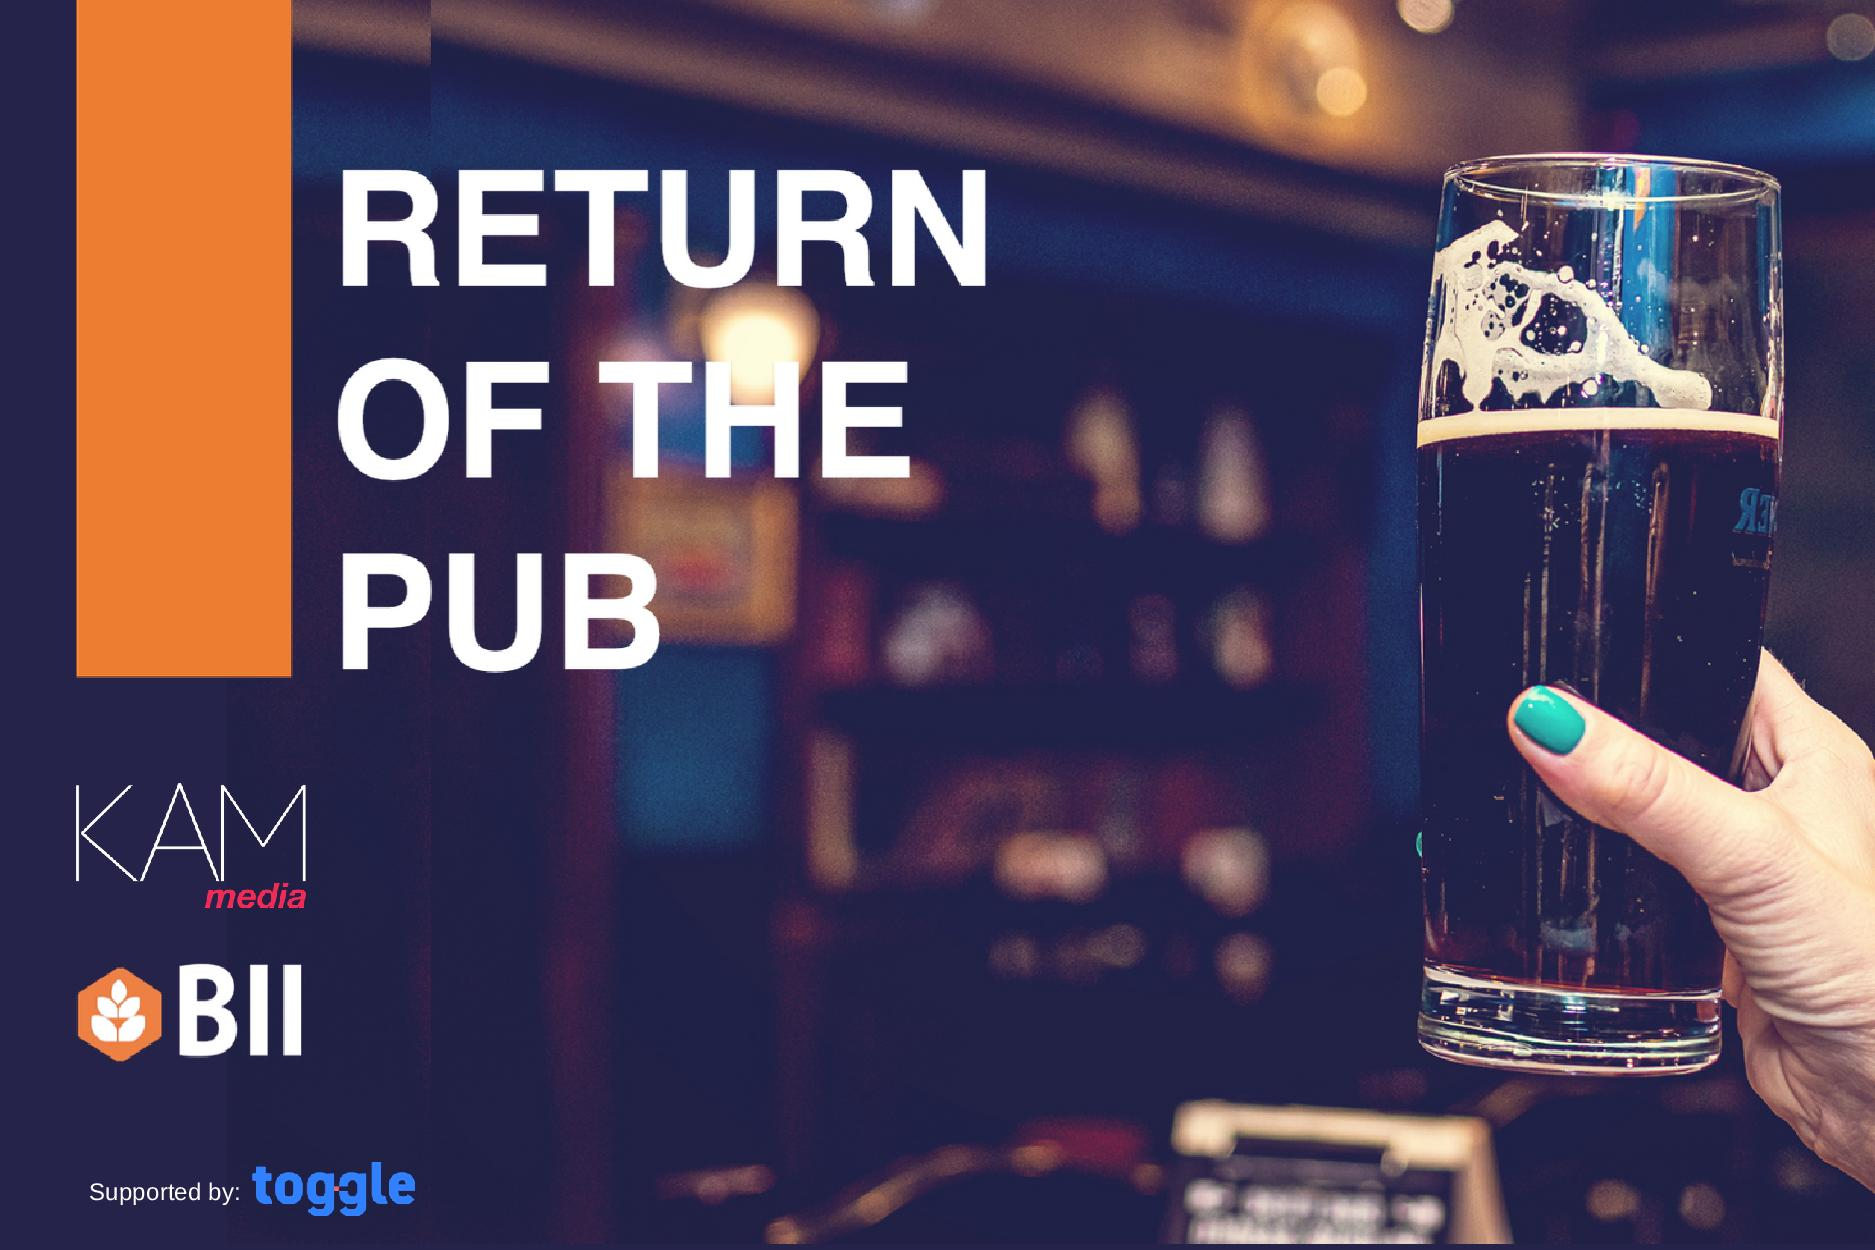 Return of the pub